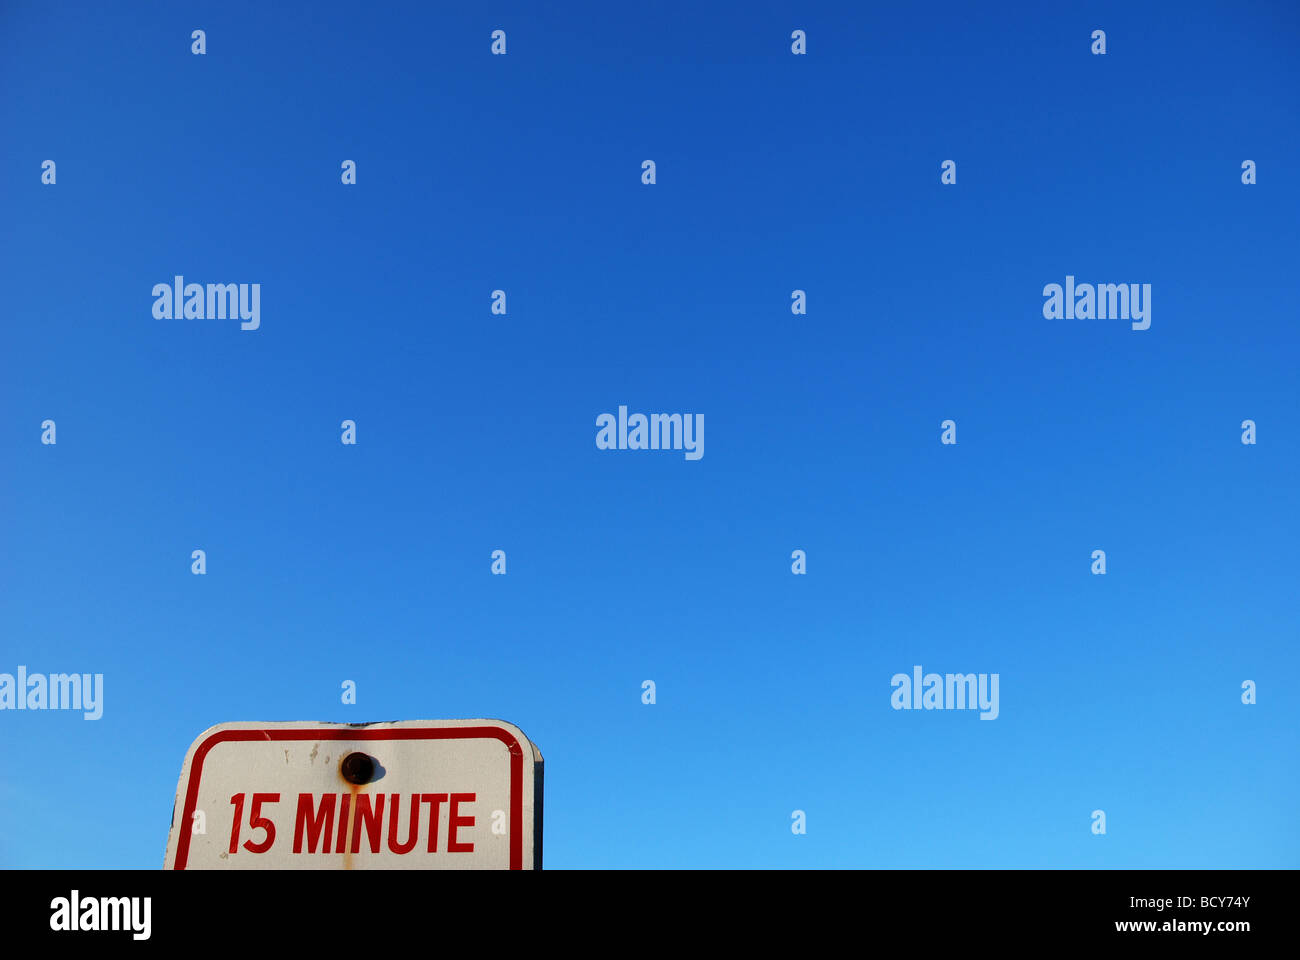 15 Minute parking sign against blue sky - Stock Image